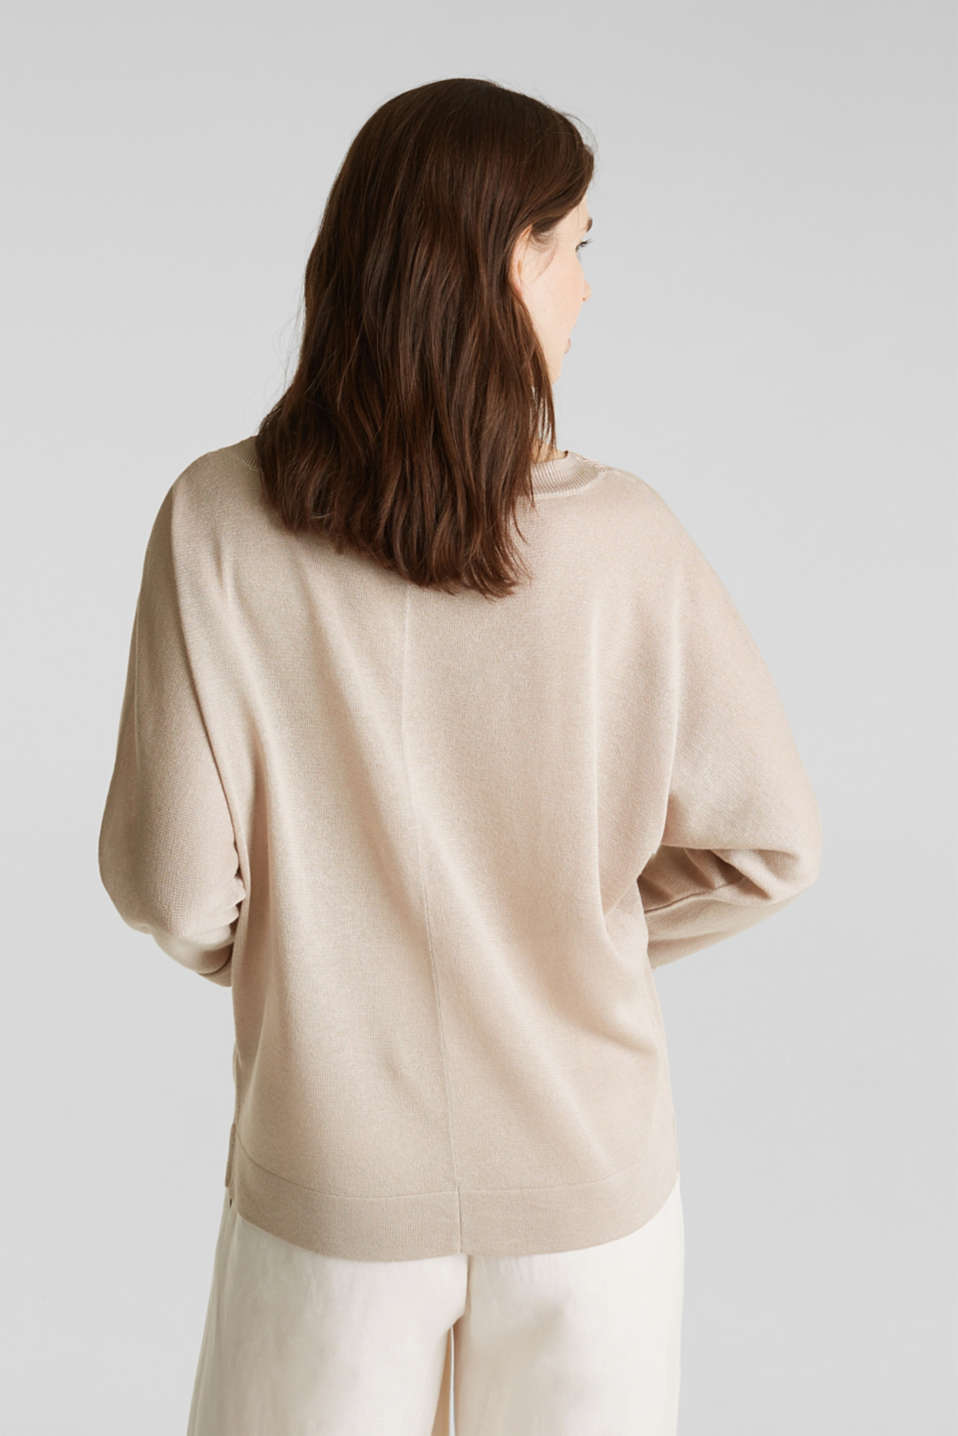 Jumper with batwing sleeves made of crêpe yarn, LIGHT BEIGE, detail image number 3